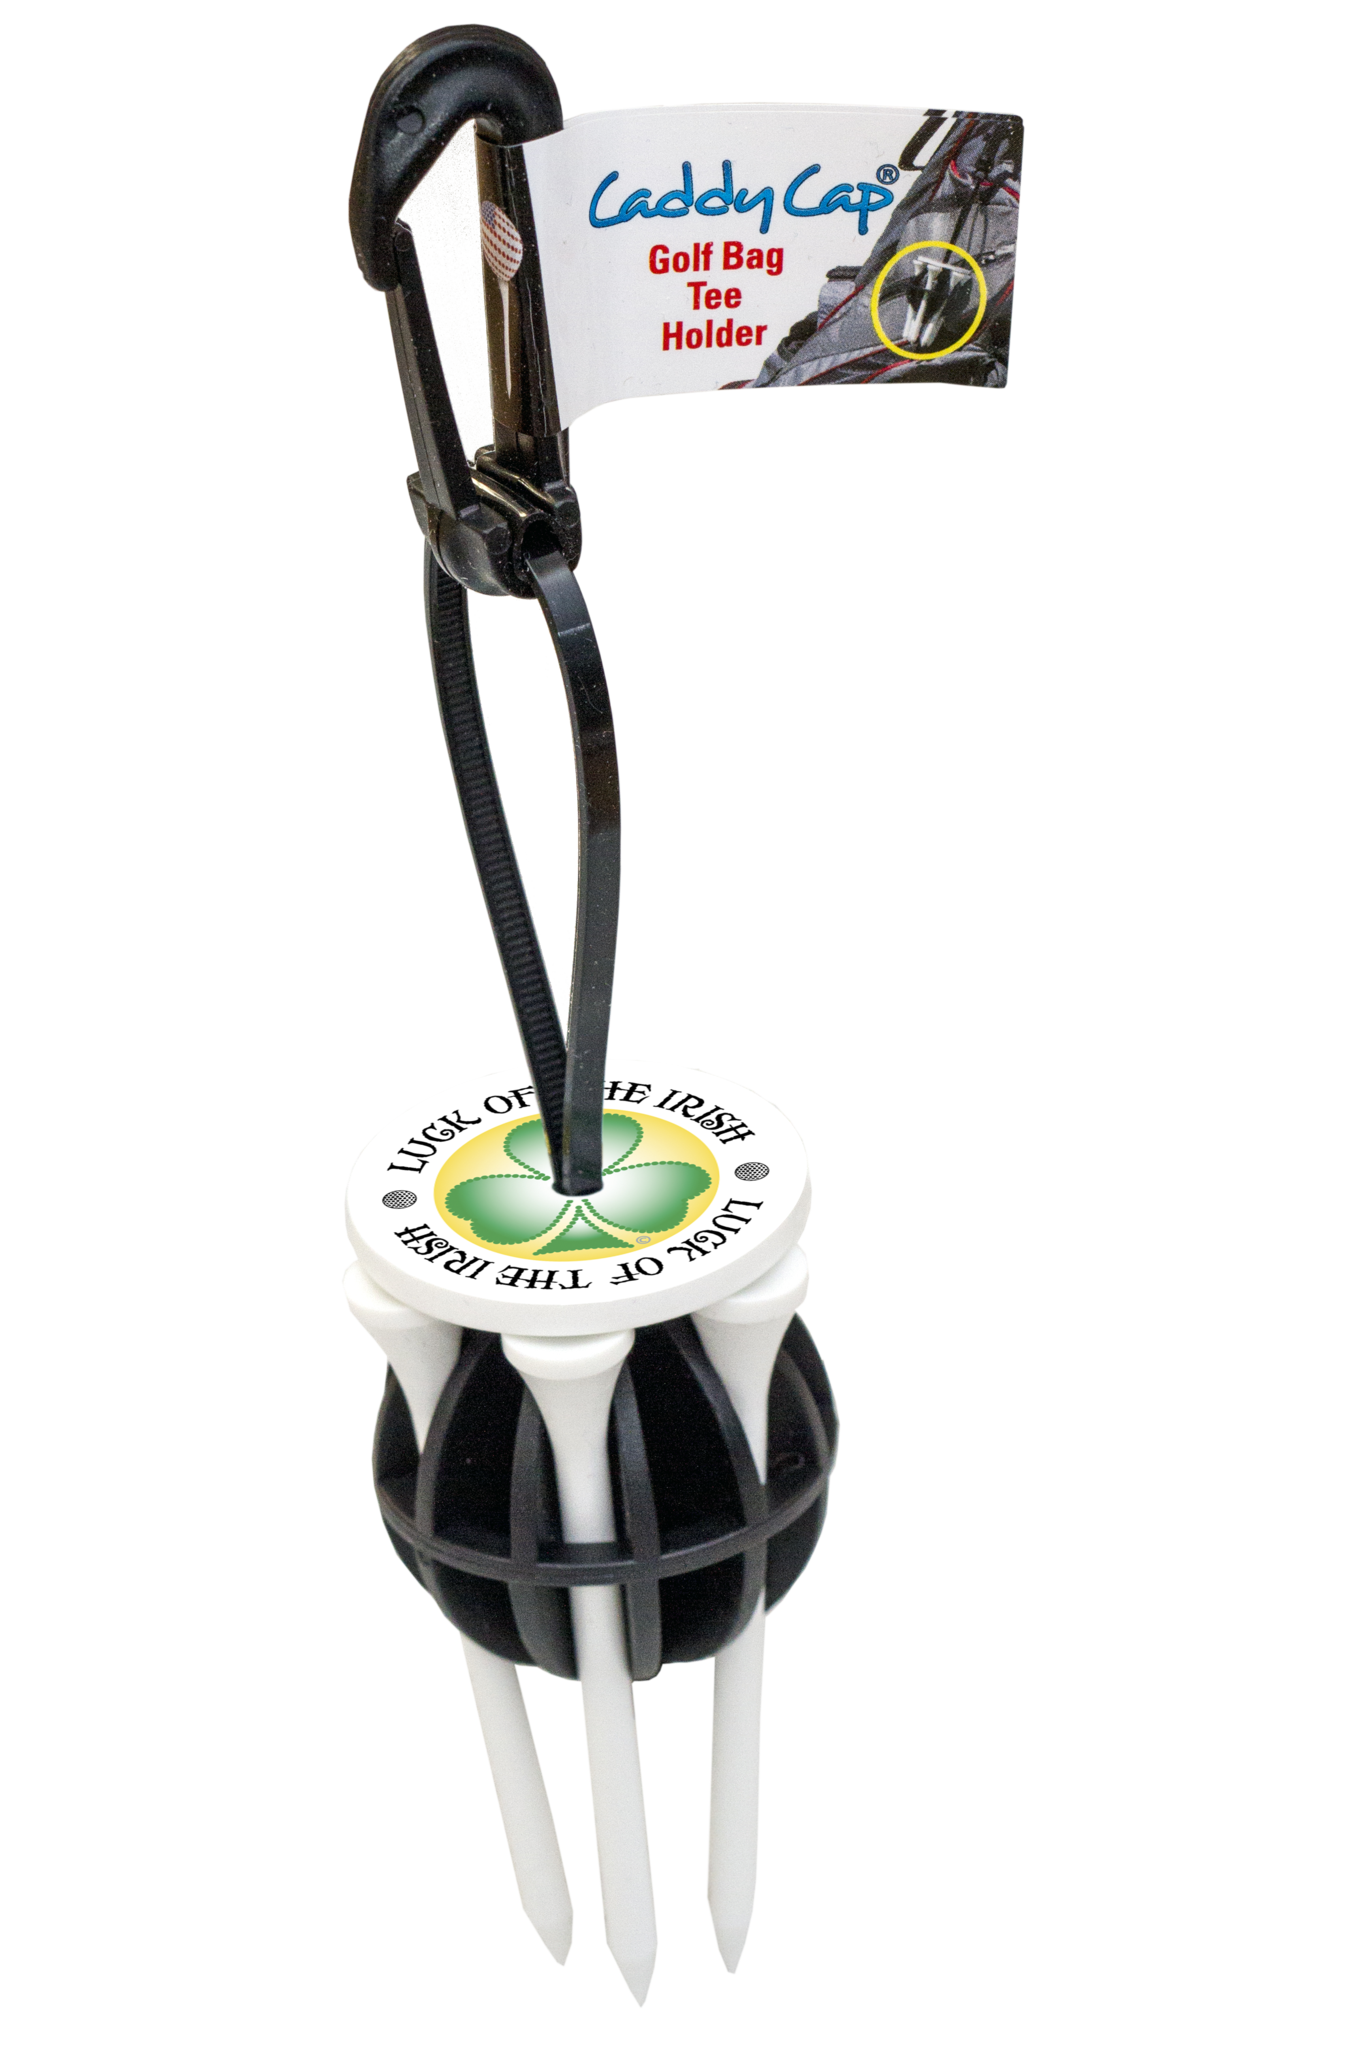 CaddyCap - Luck of the Irish Golf Tee Holder